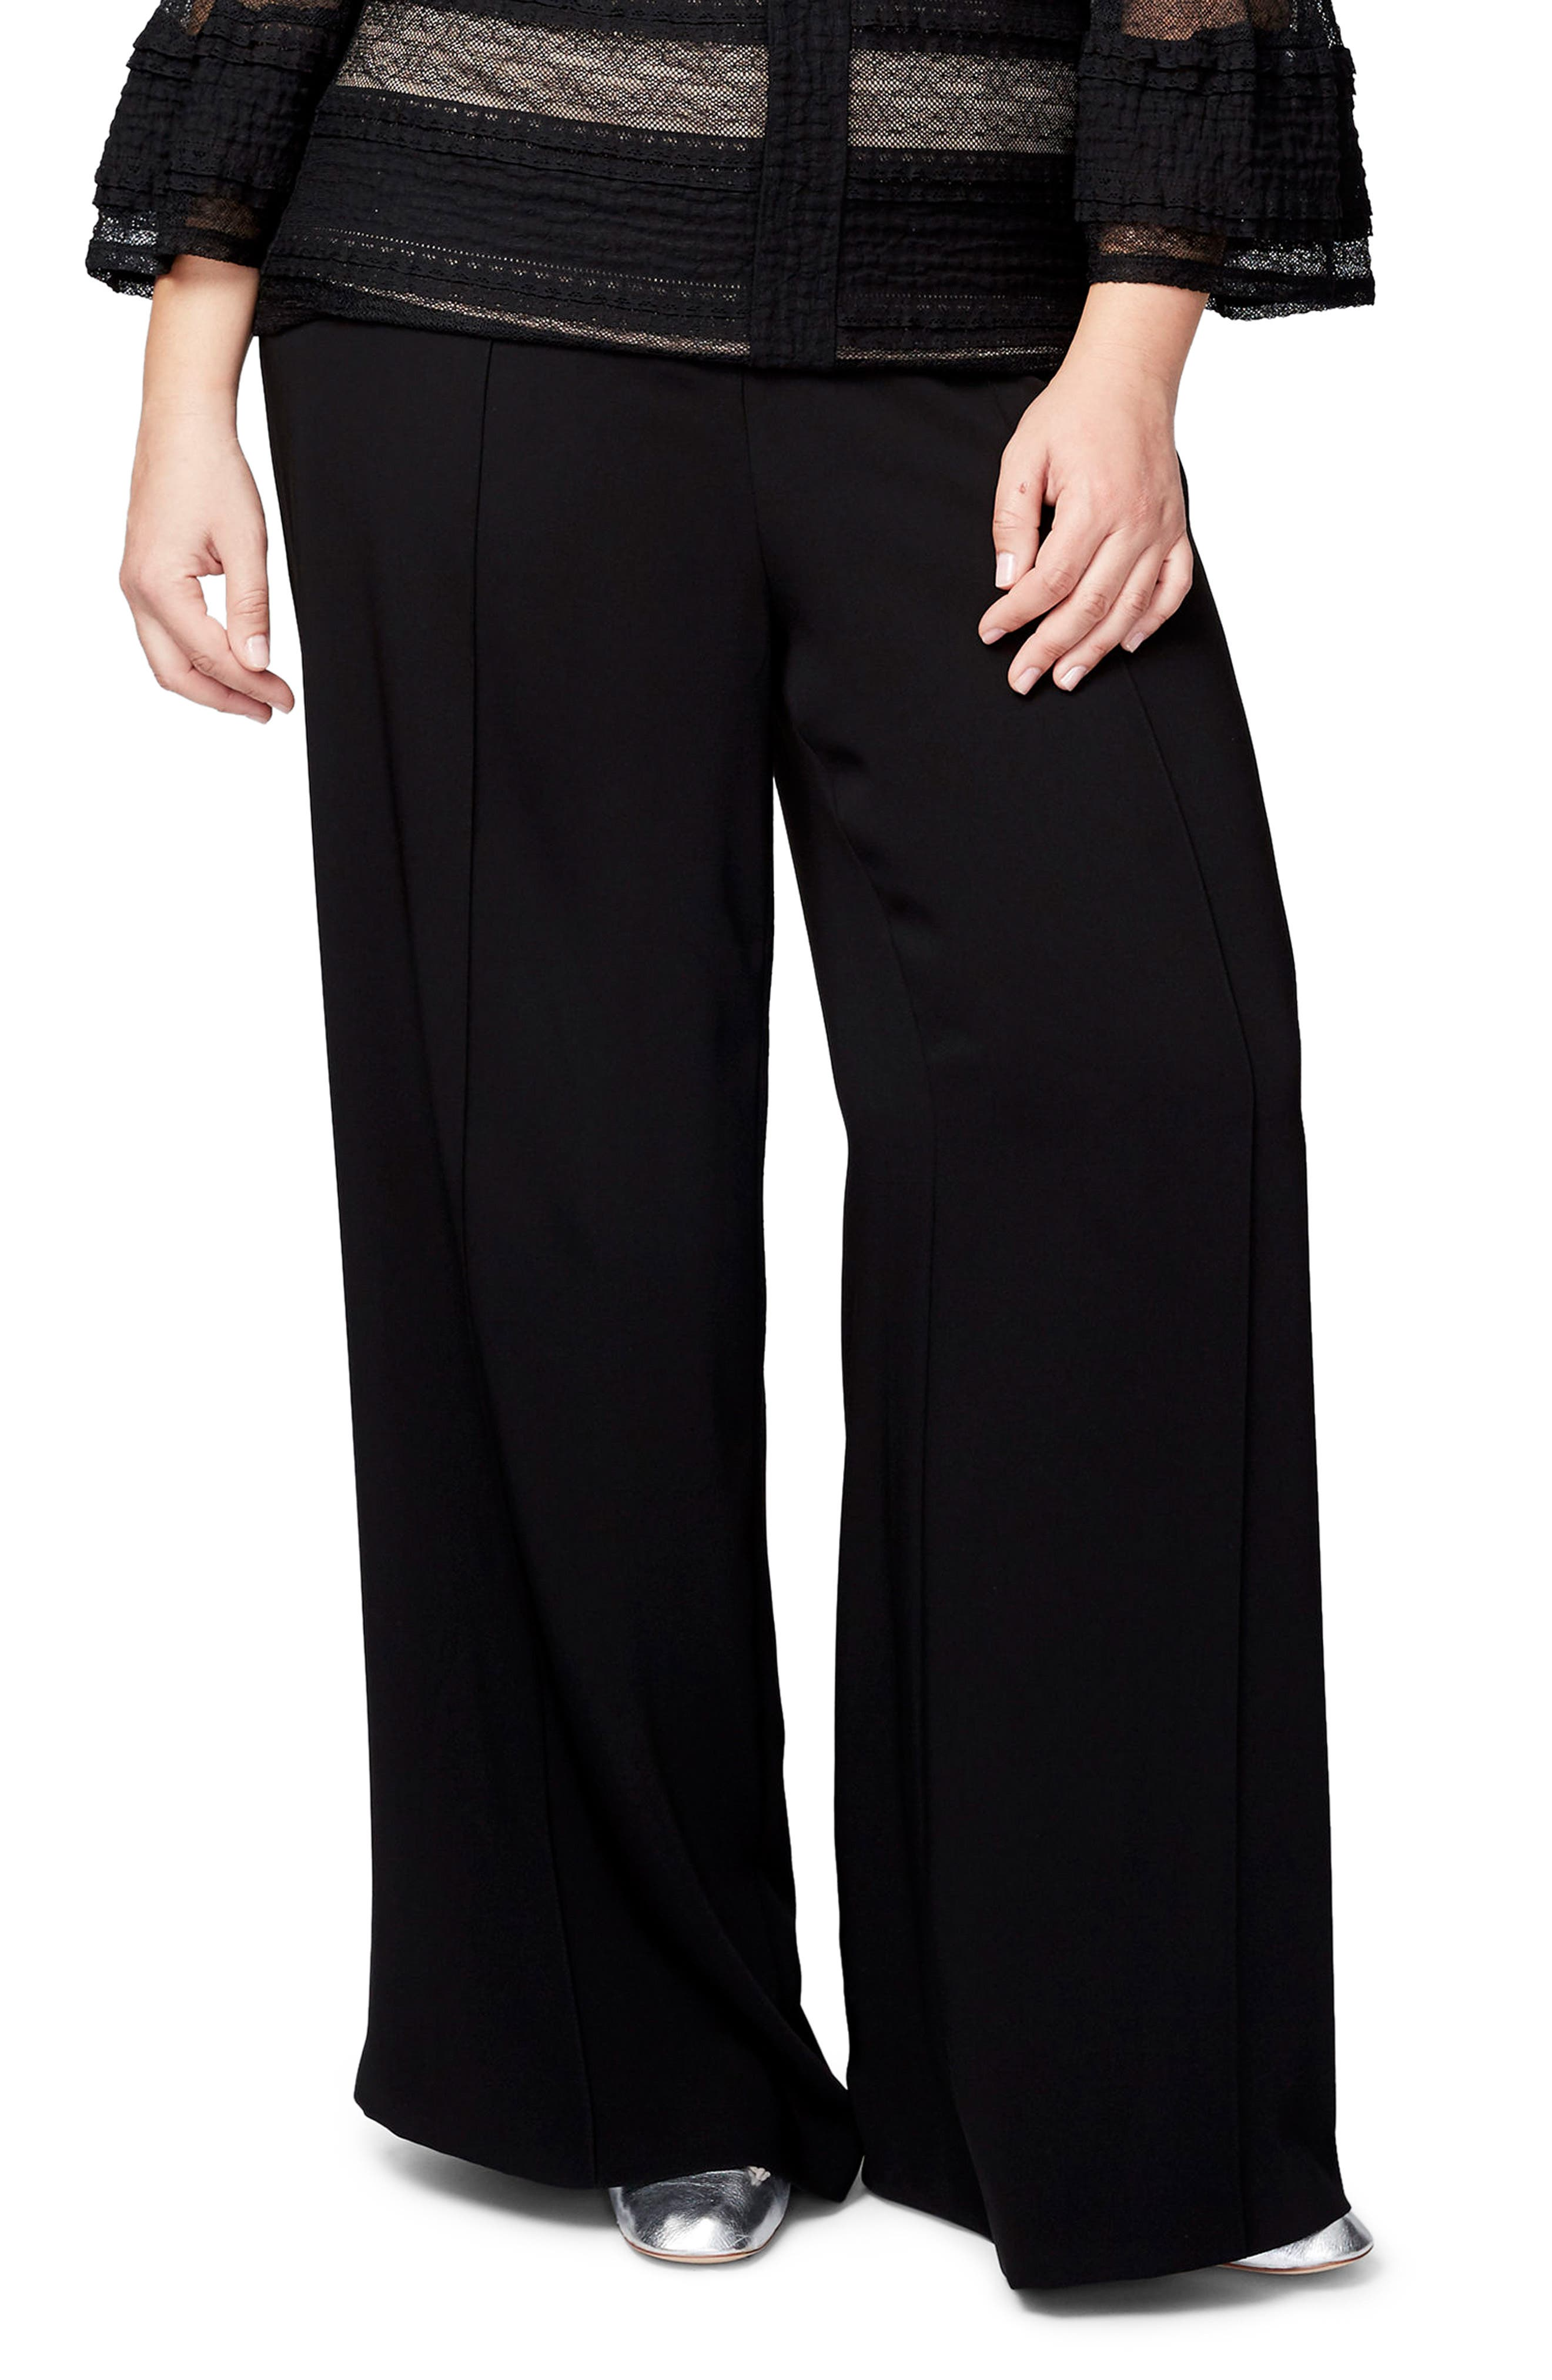 RACHEL Rachel Roy Denise Wide Leg Pants (Plus Size)